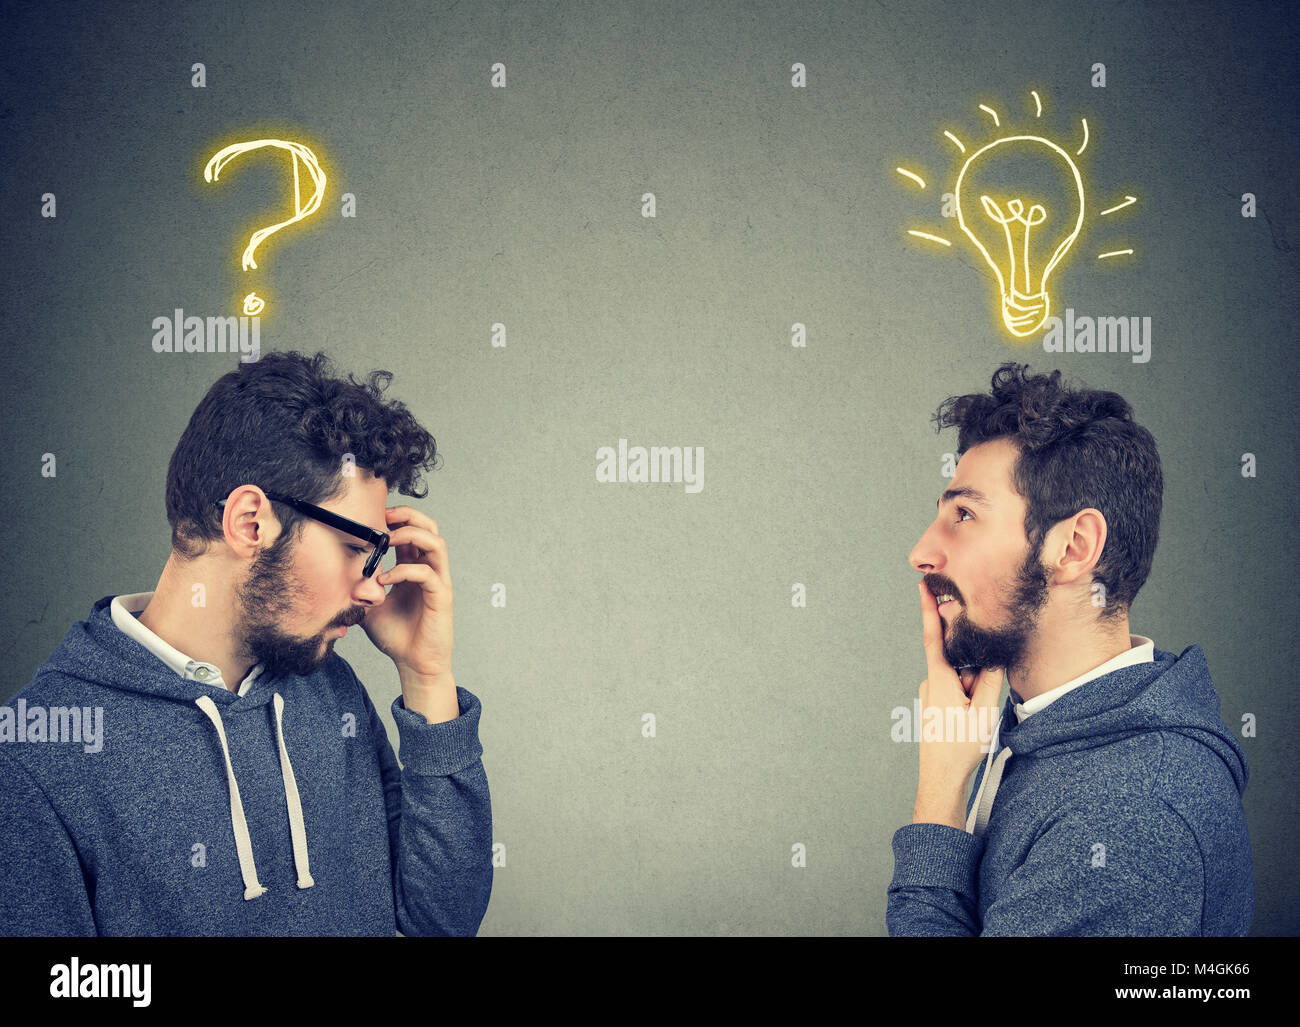 Two men thinking one has a question another solution with light bulb above head isolated on gray background. - Stock Image